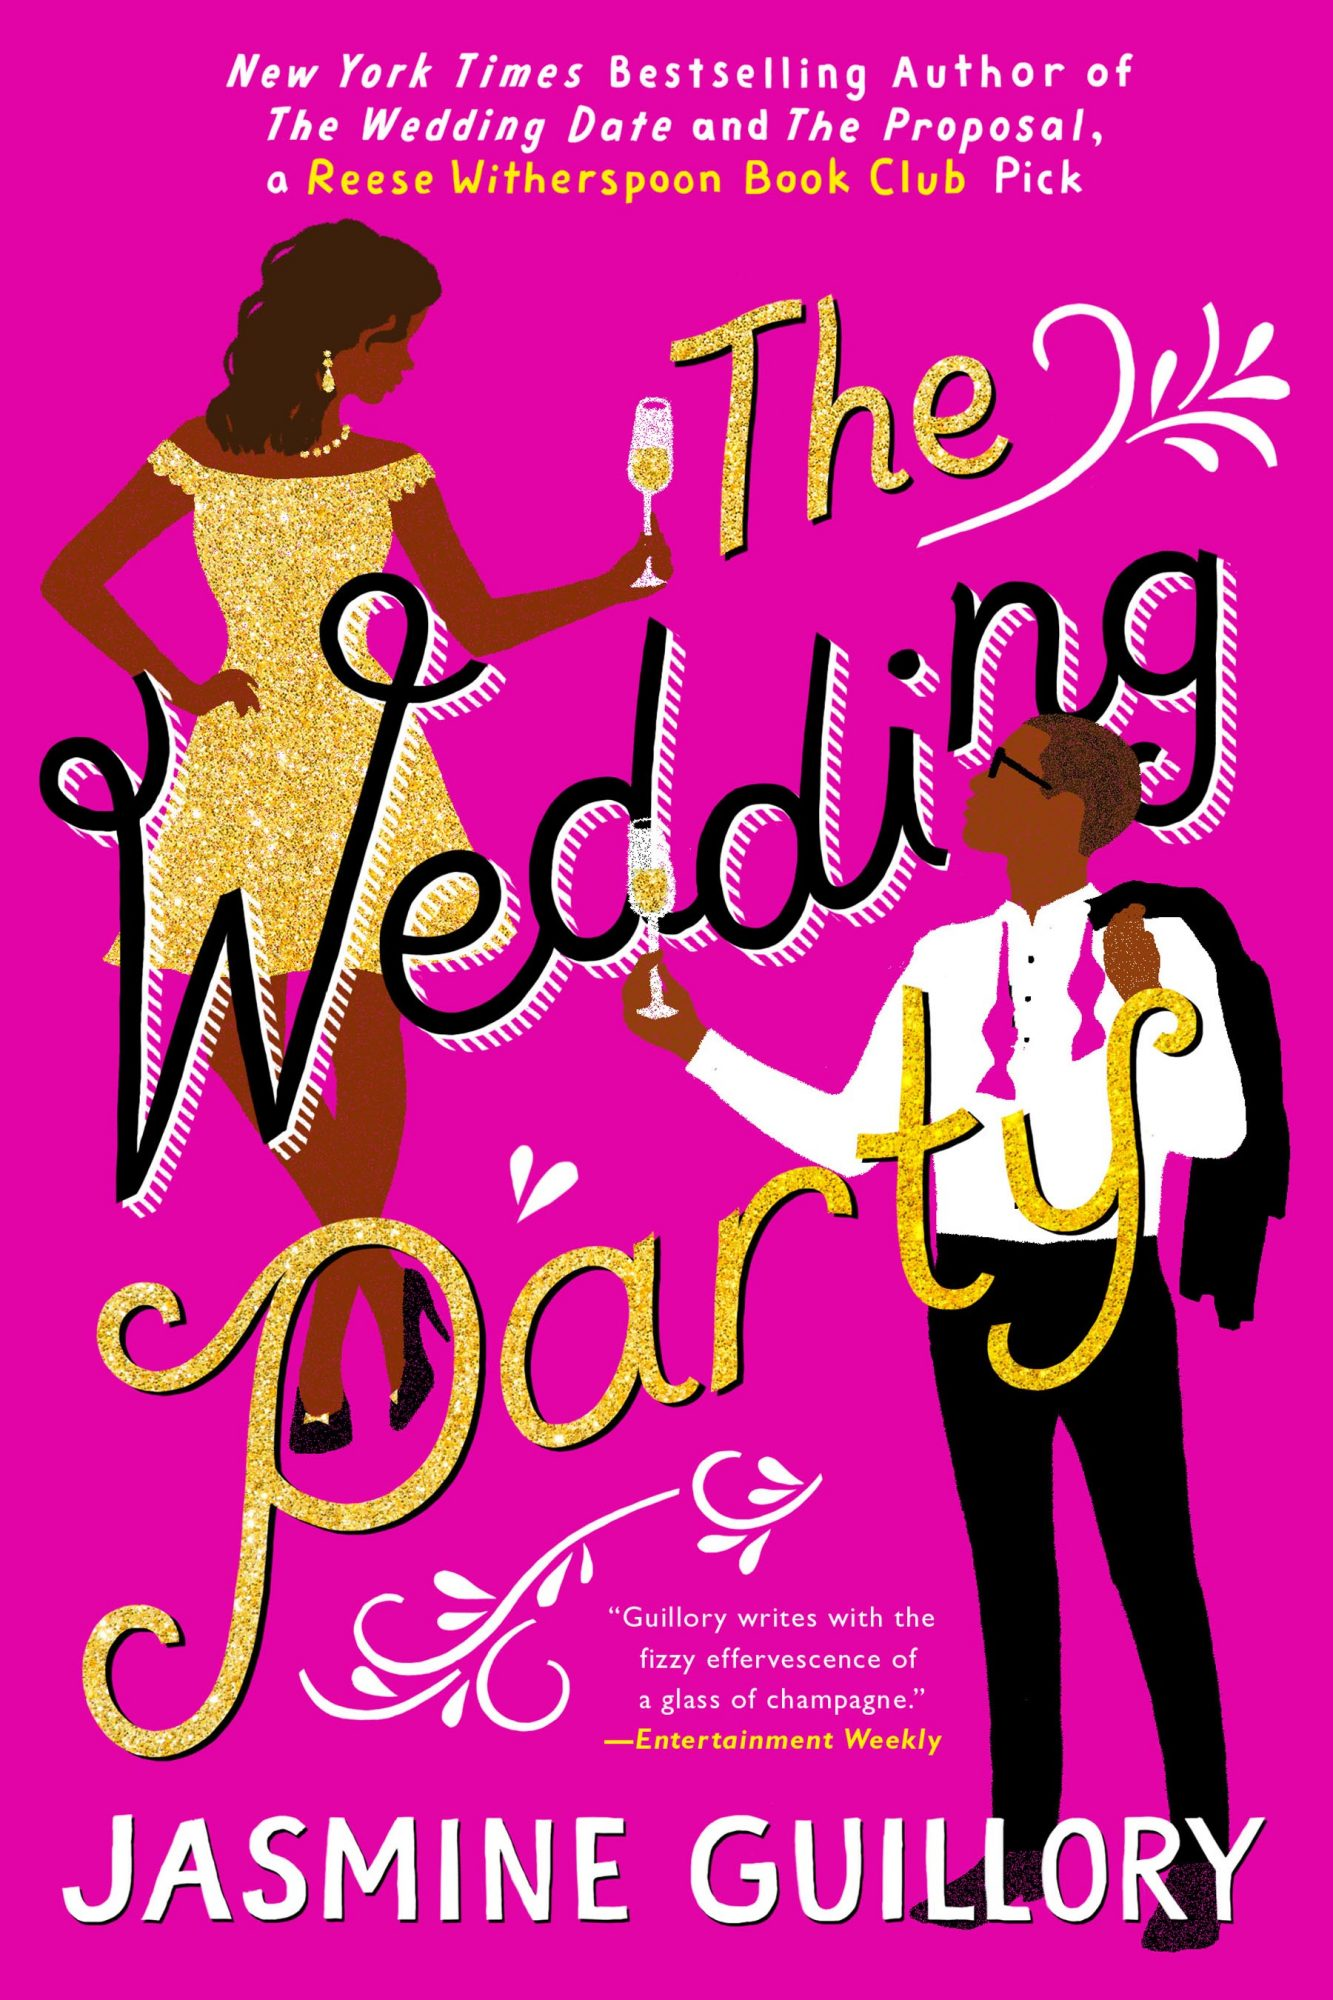 The Wedding Party, by Jasmine Guillory